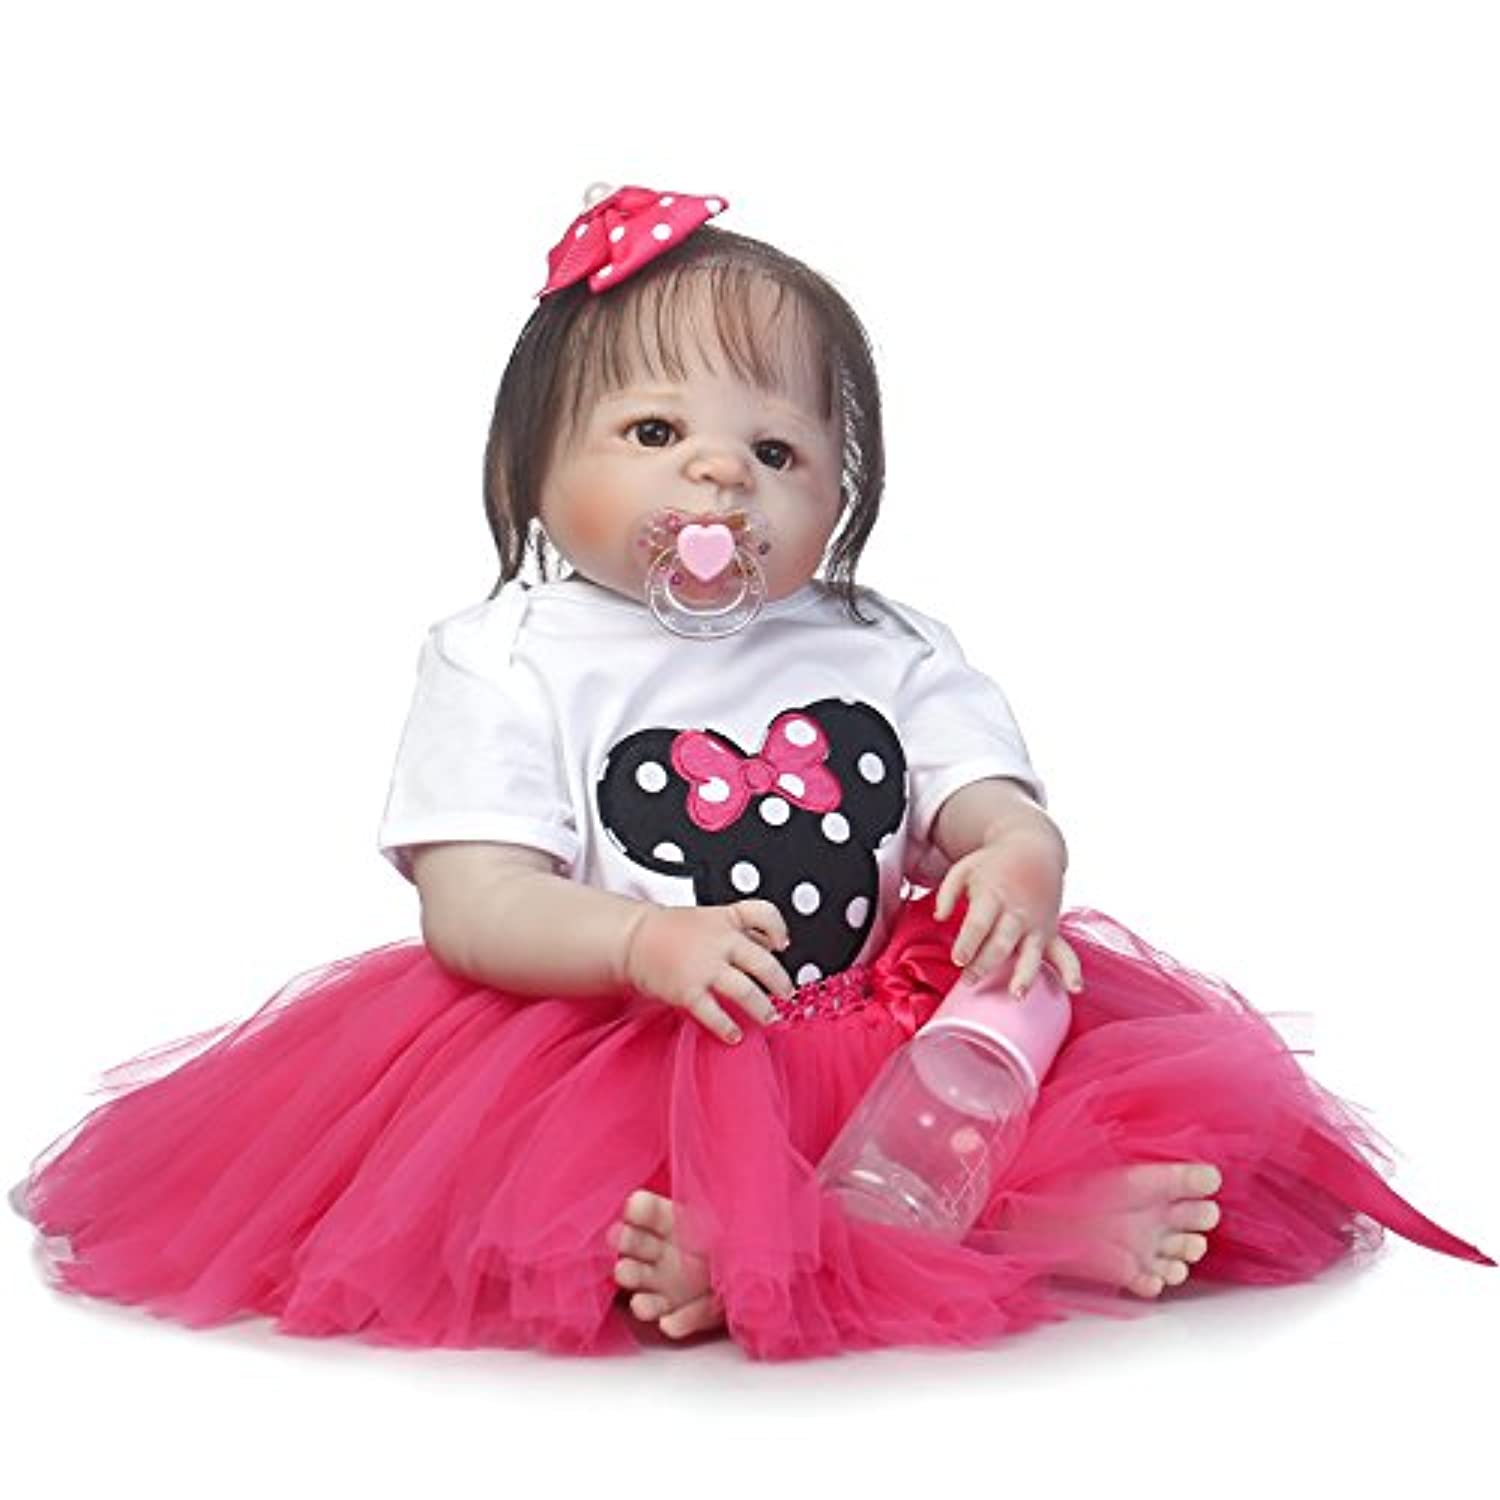 SanyDoll Rebornベビー人形ソフトSilicone 22インチ55 cm磁気Lovely Lifelike Cute Lovely Baby b0763ldkmz